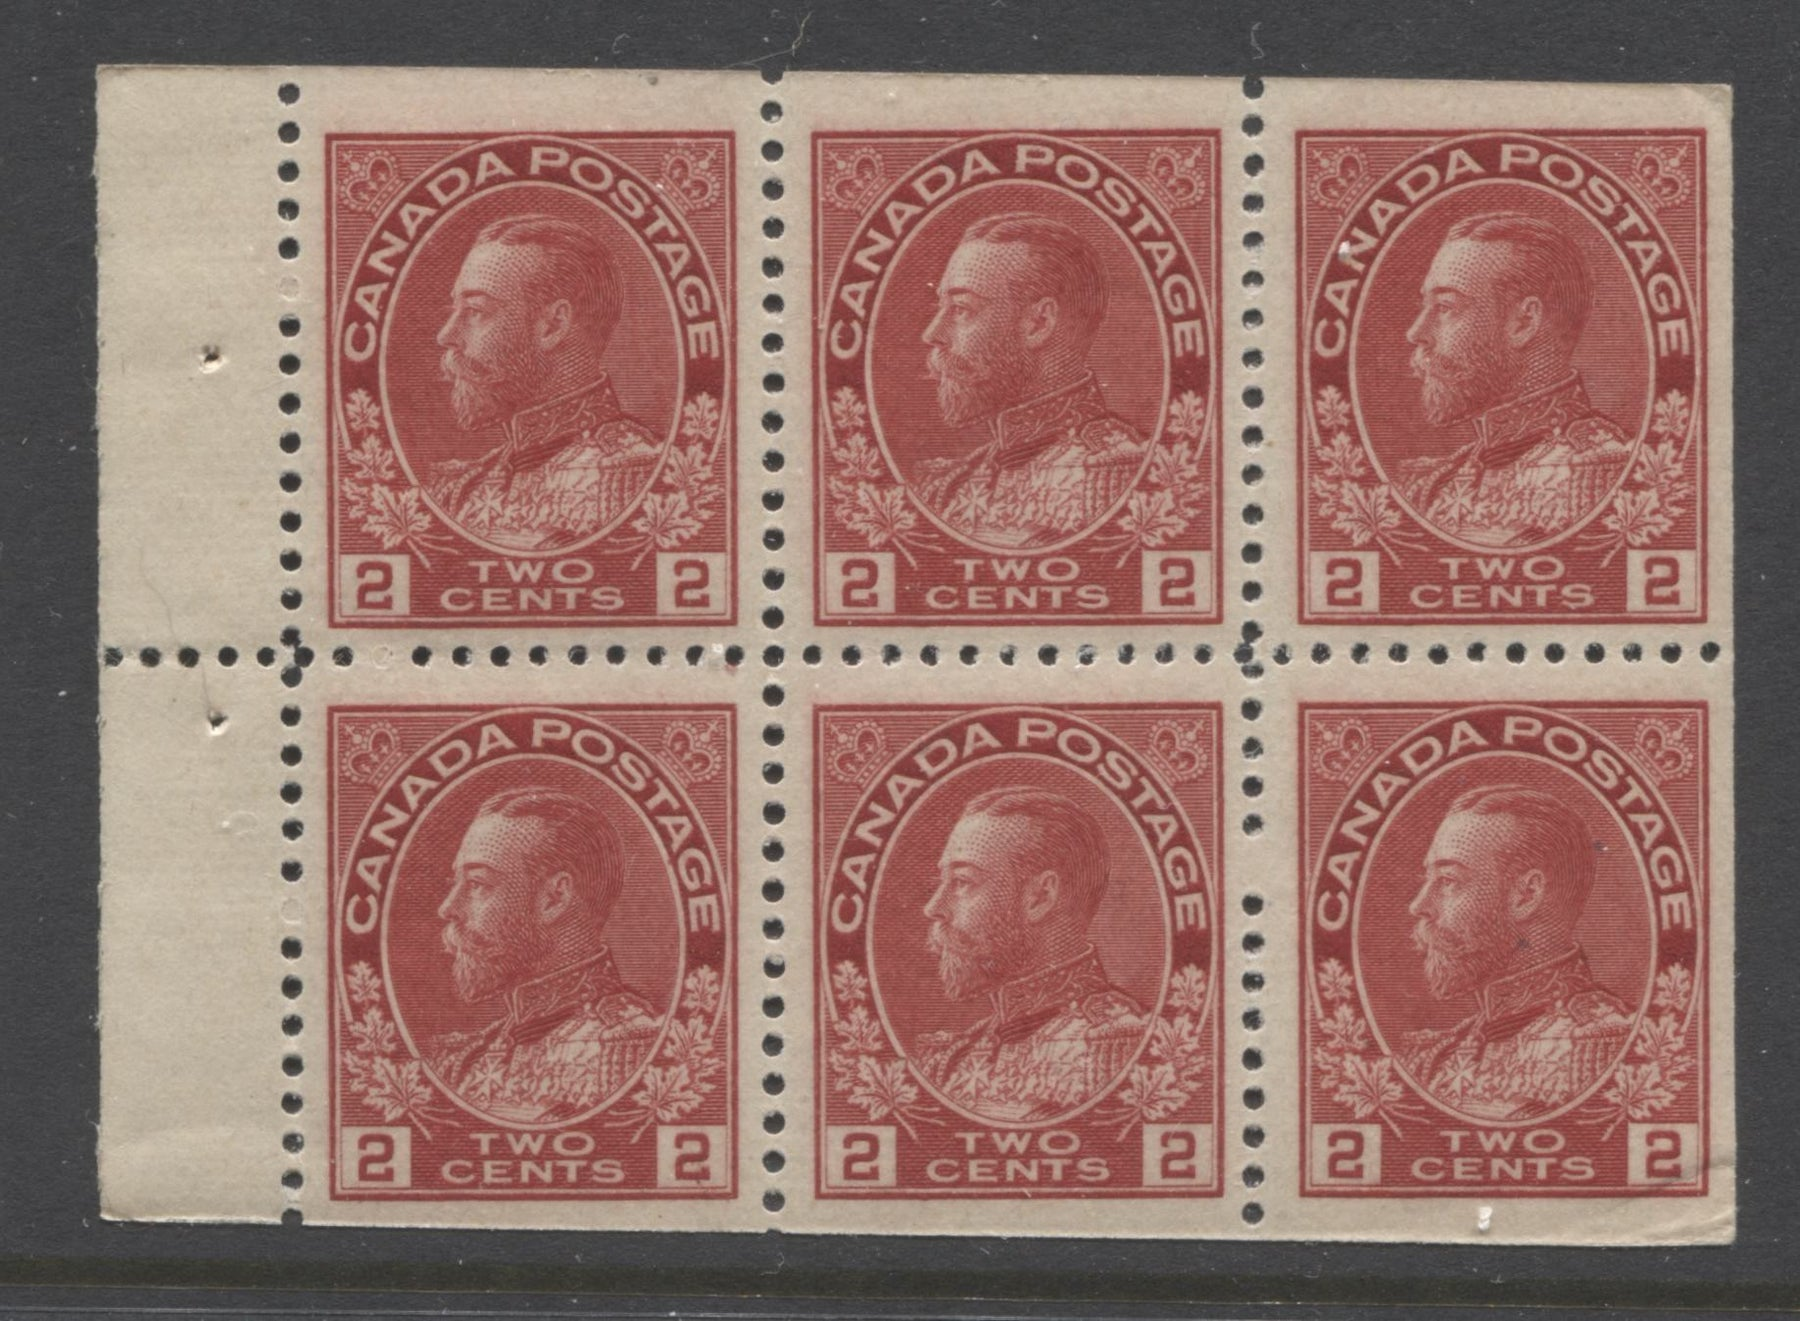 Canada #106a 2c Carmine-Red King George V, 1911-1928 Admiral Issue, Fine NH Miscut Booklet Pane of 6 of the 17.7 mm x 21.5 mm Wet Printing Brixton Chrome